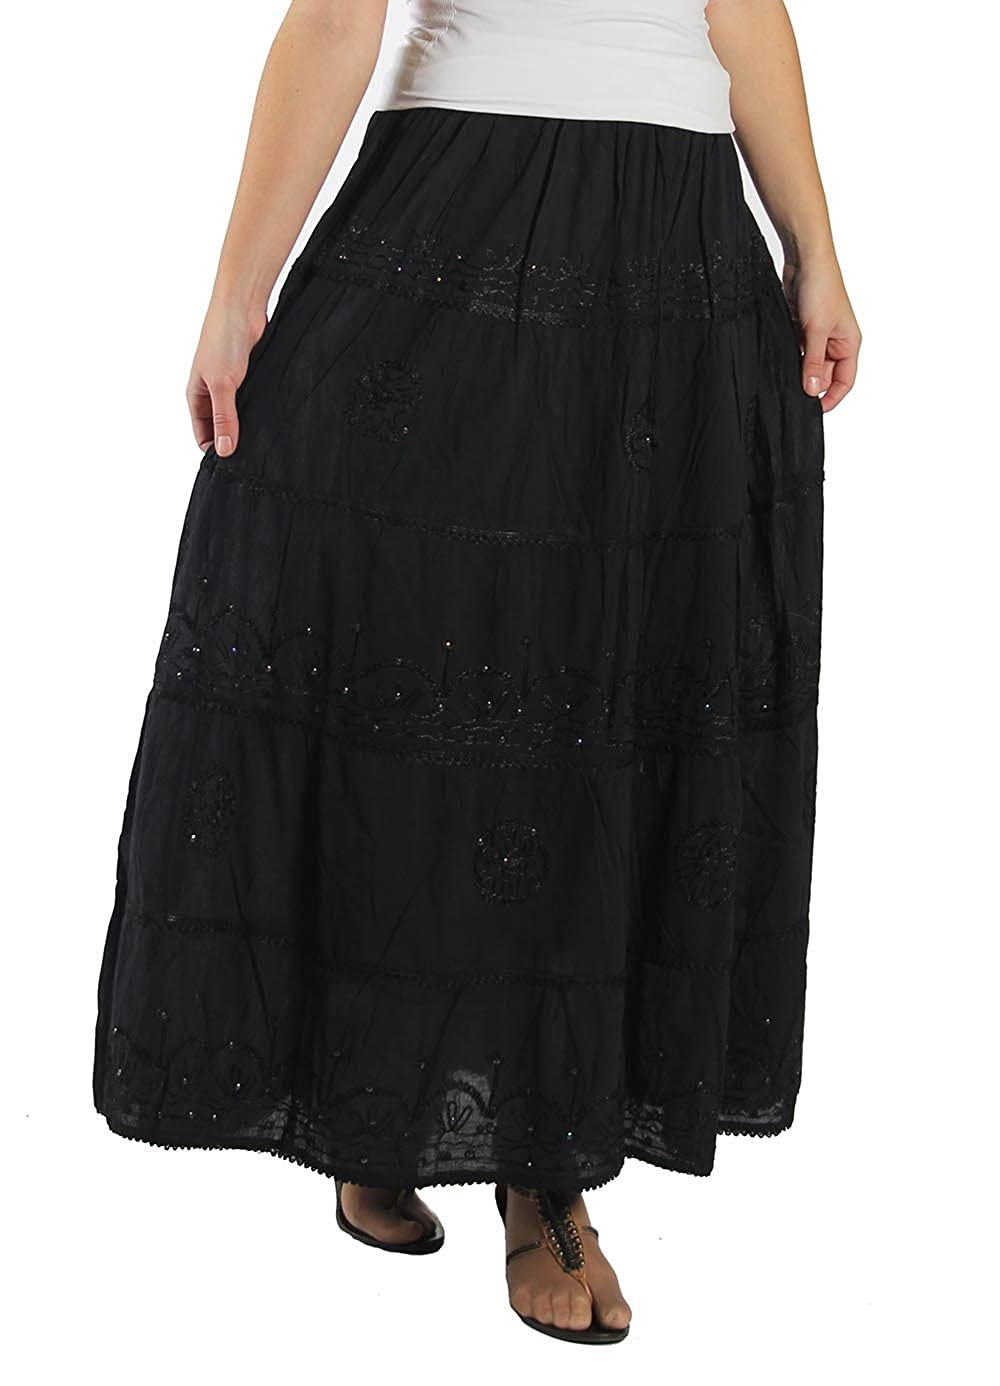 85210ef56 KayJayStyles Full Length Womens Solid Embroidered Gypsy Bohemian Long Cotton  Skirt (Black) at Amazon Women's Clothing store: